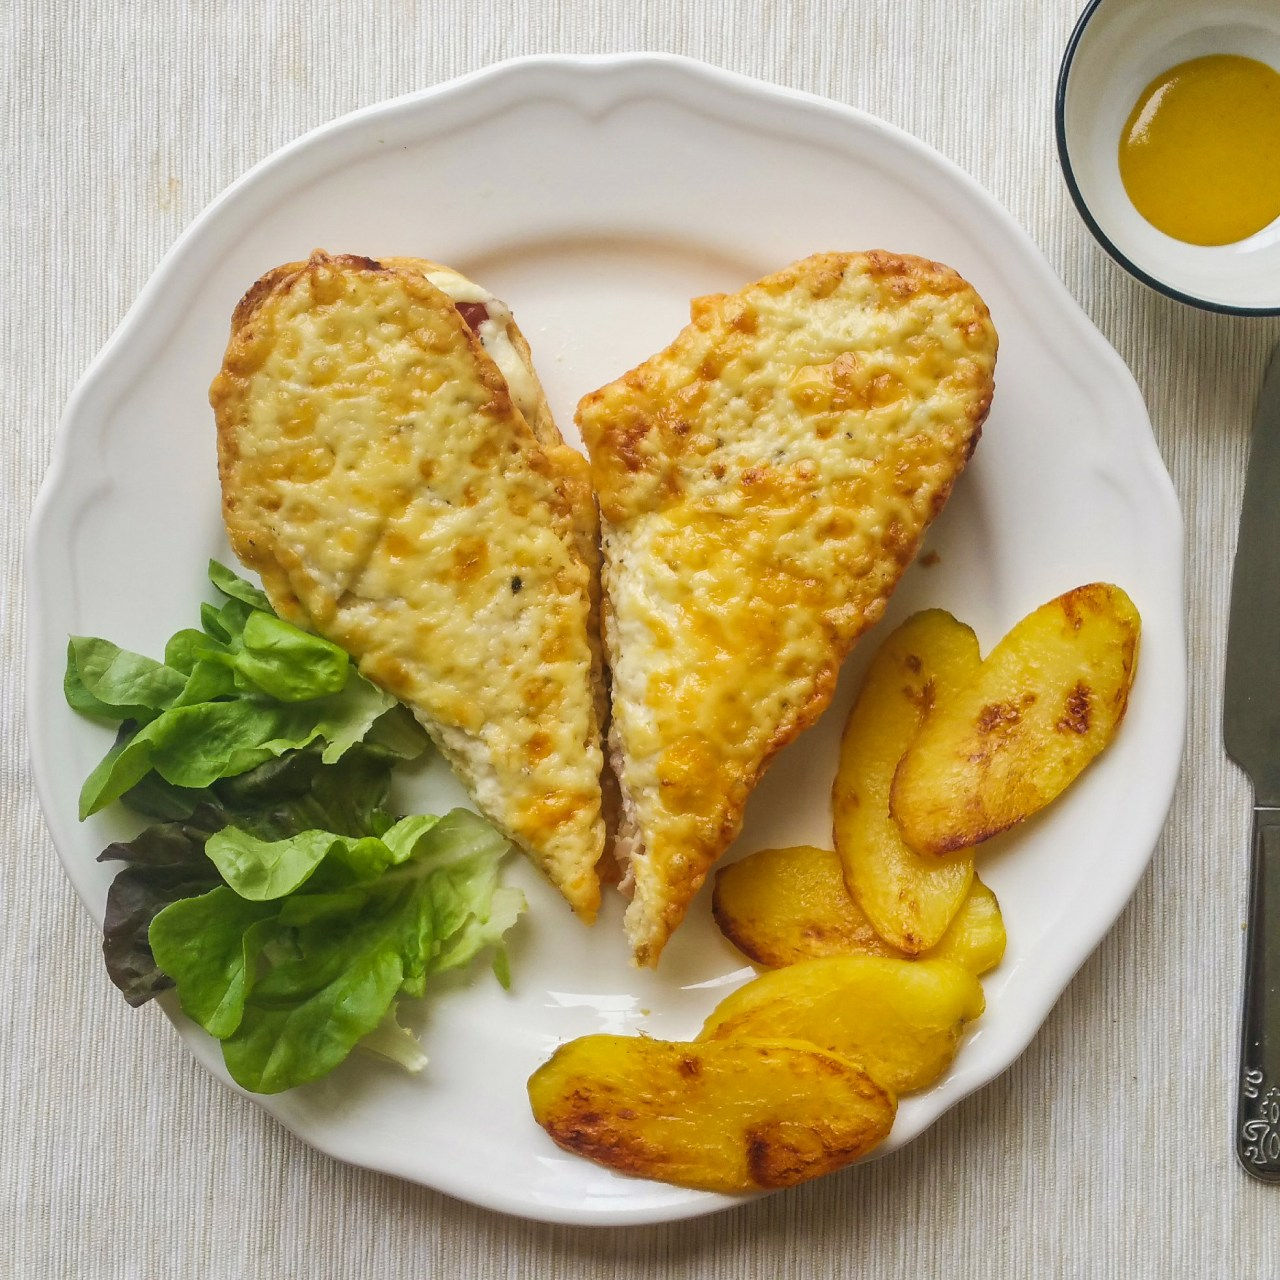 Croque Monsieur, potato frites and lettuce on a plate with a side of Dijon